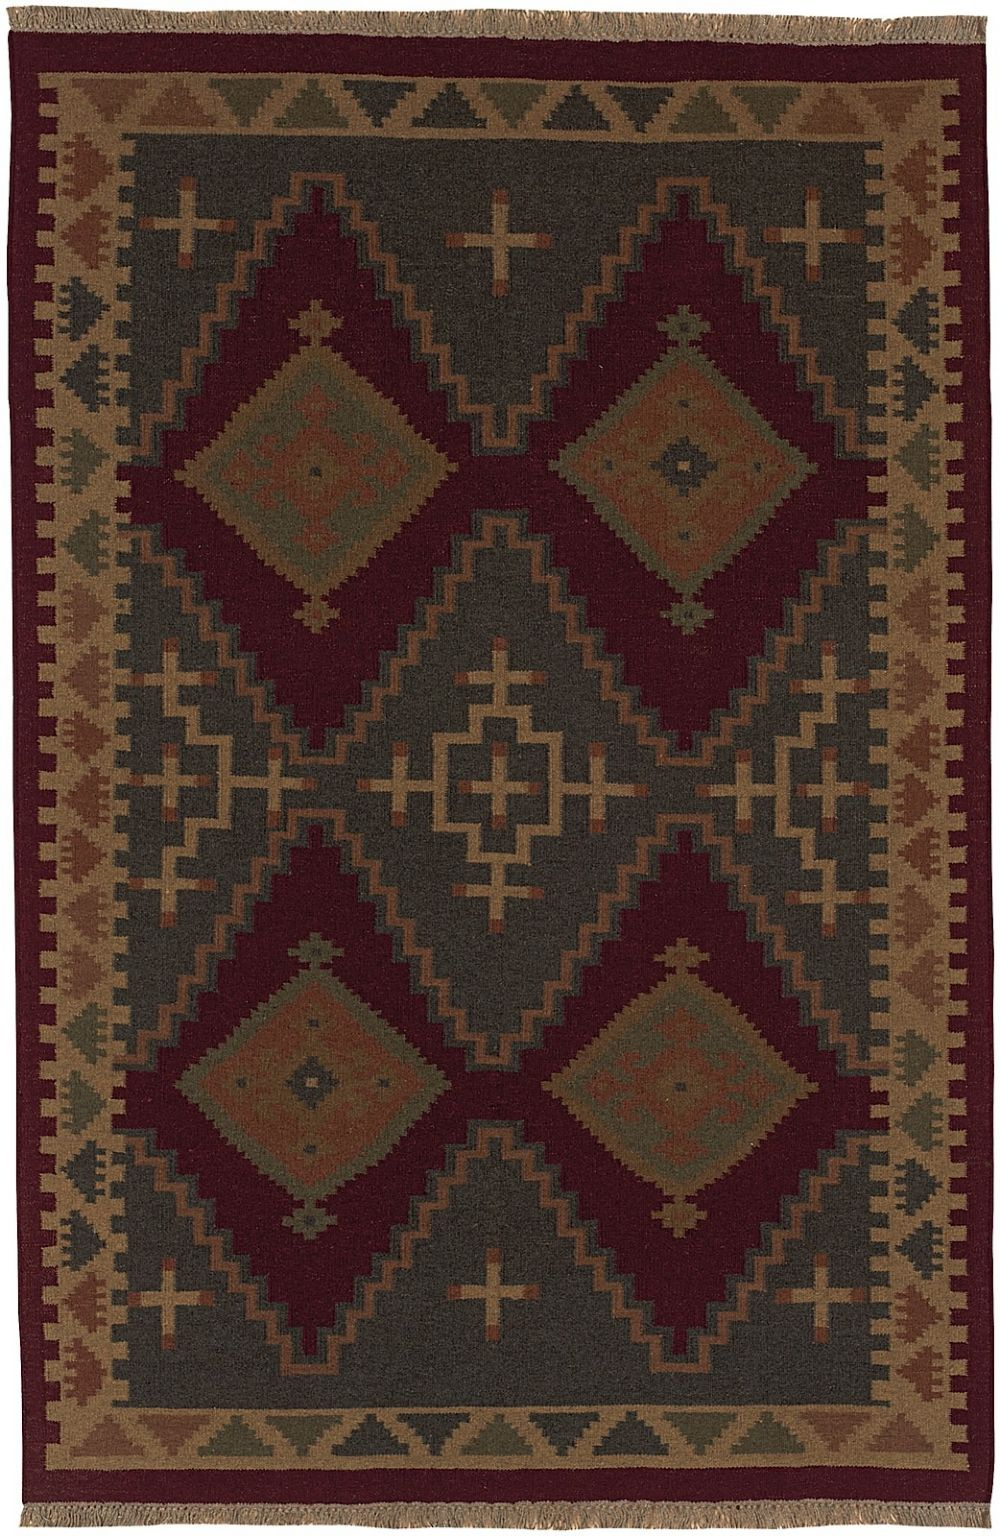 surya jewel tone southwestern/lodge area rug collection